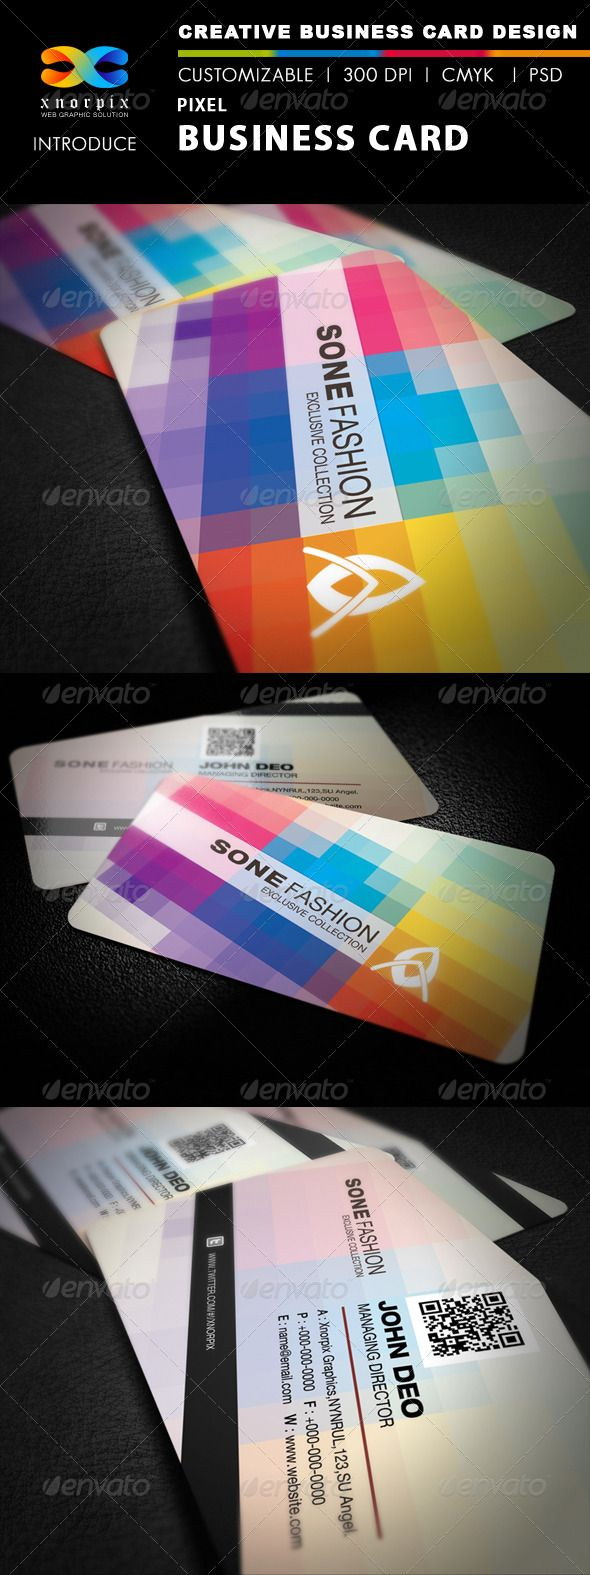 Pixel business card business cards template and psd templates pixel business card reheart Choice Image